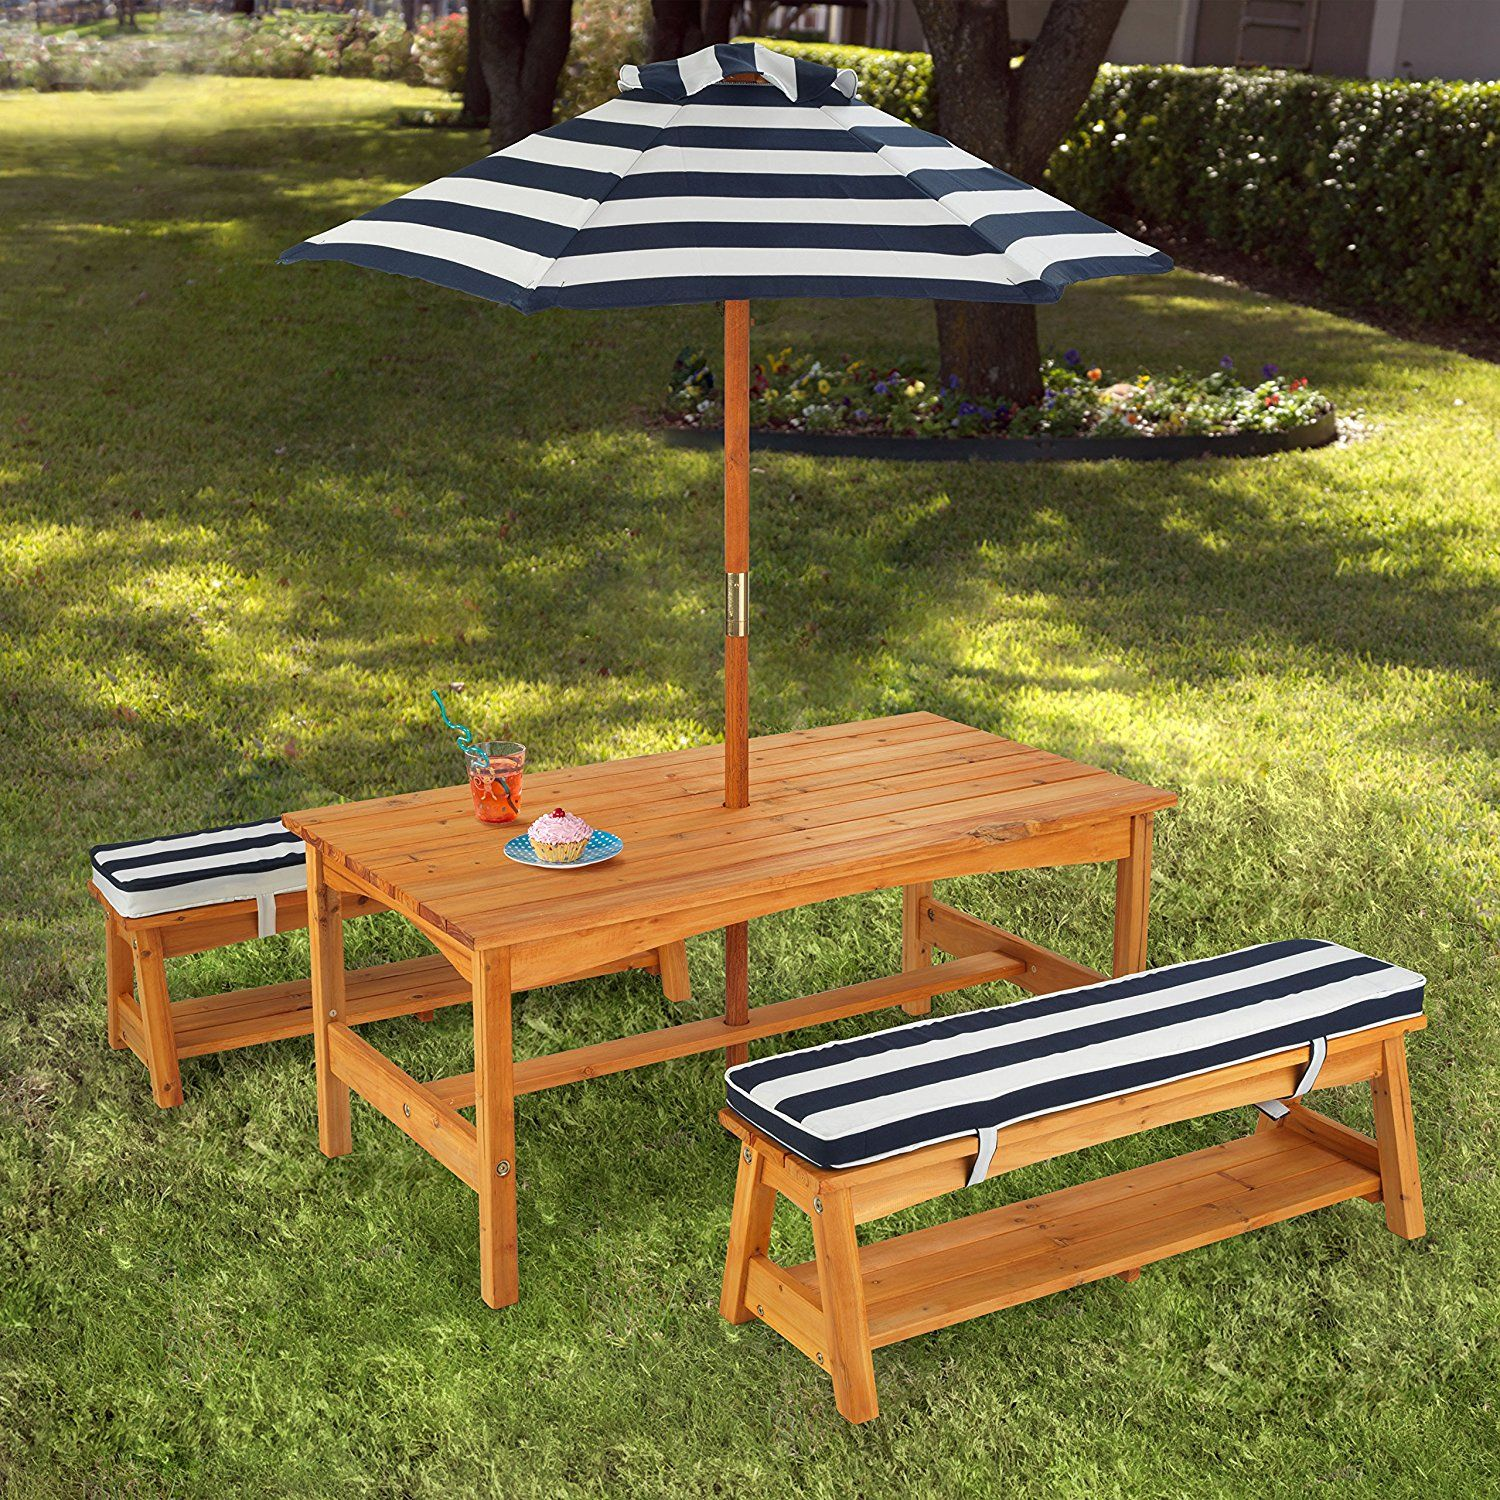 Kidkraft Outdoor Table And Chair Set With Cushions Navy Stripes Toys